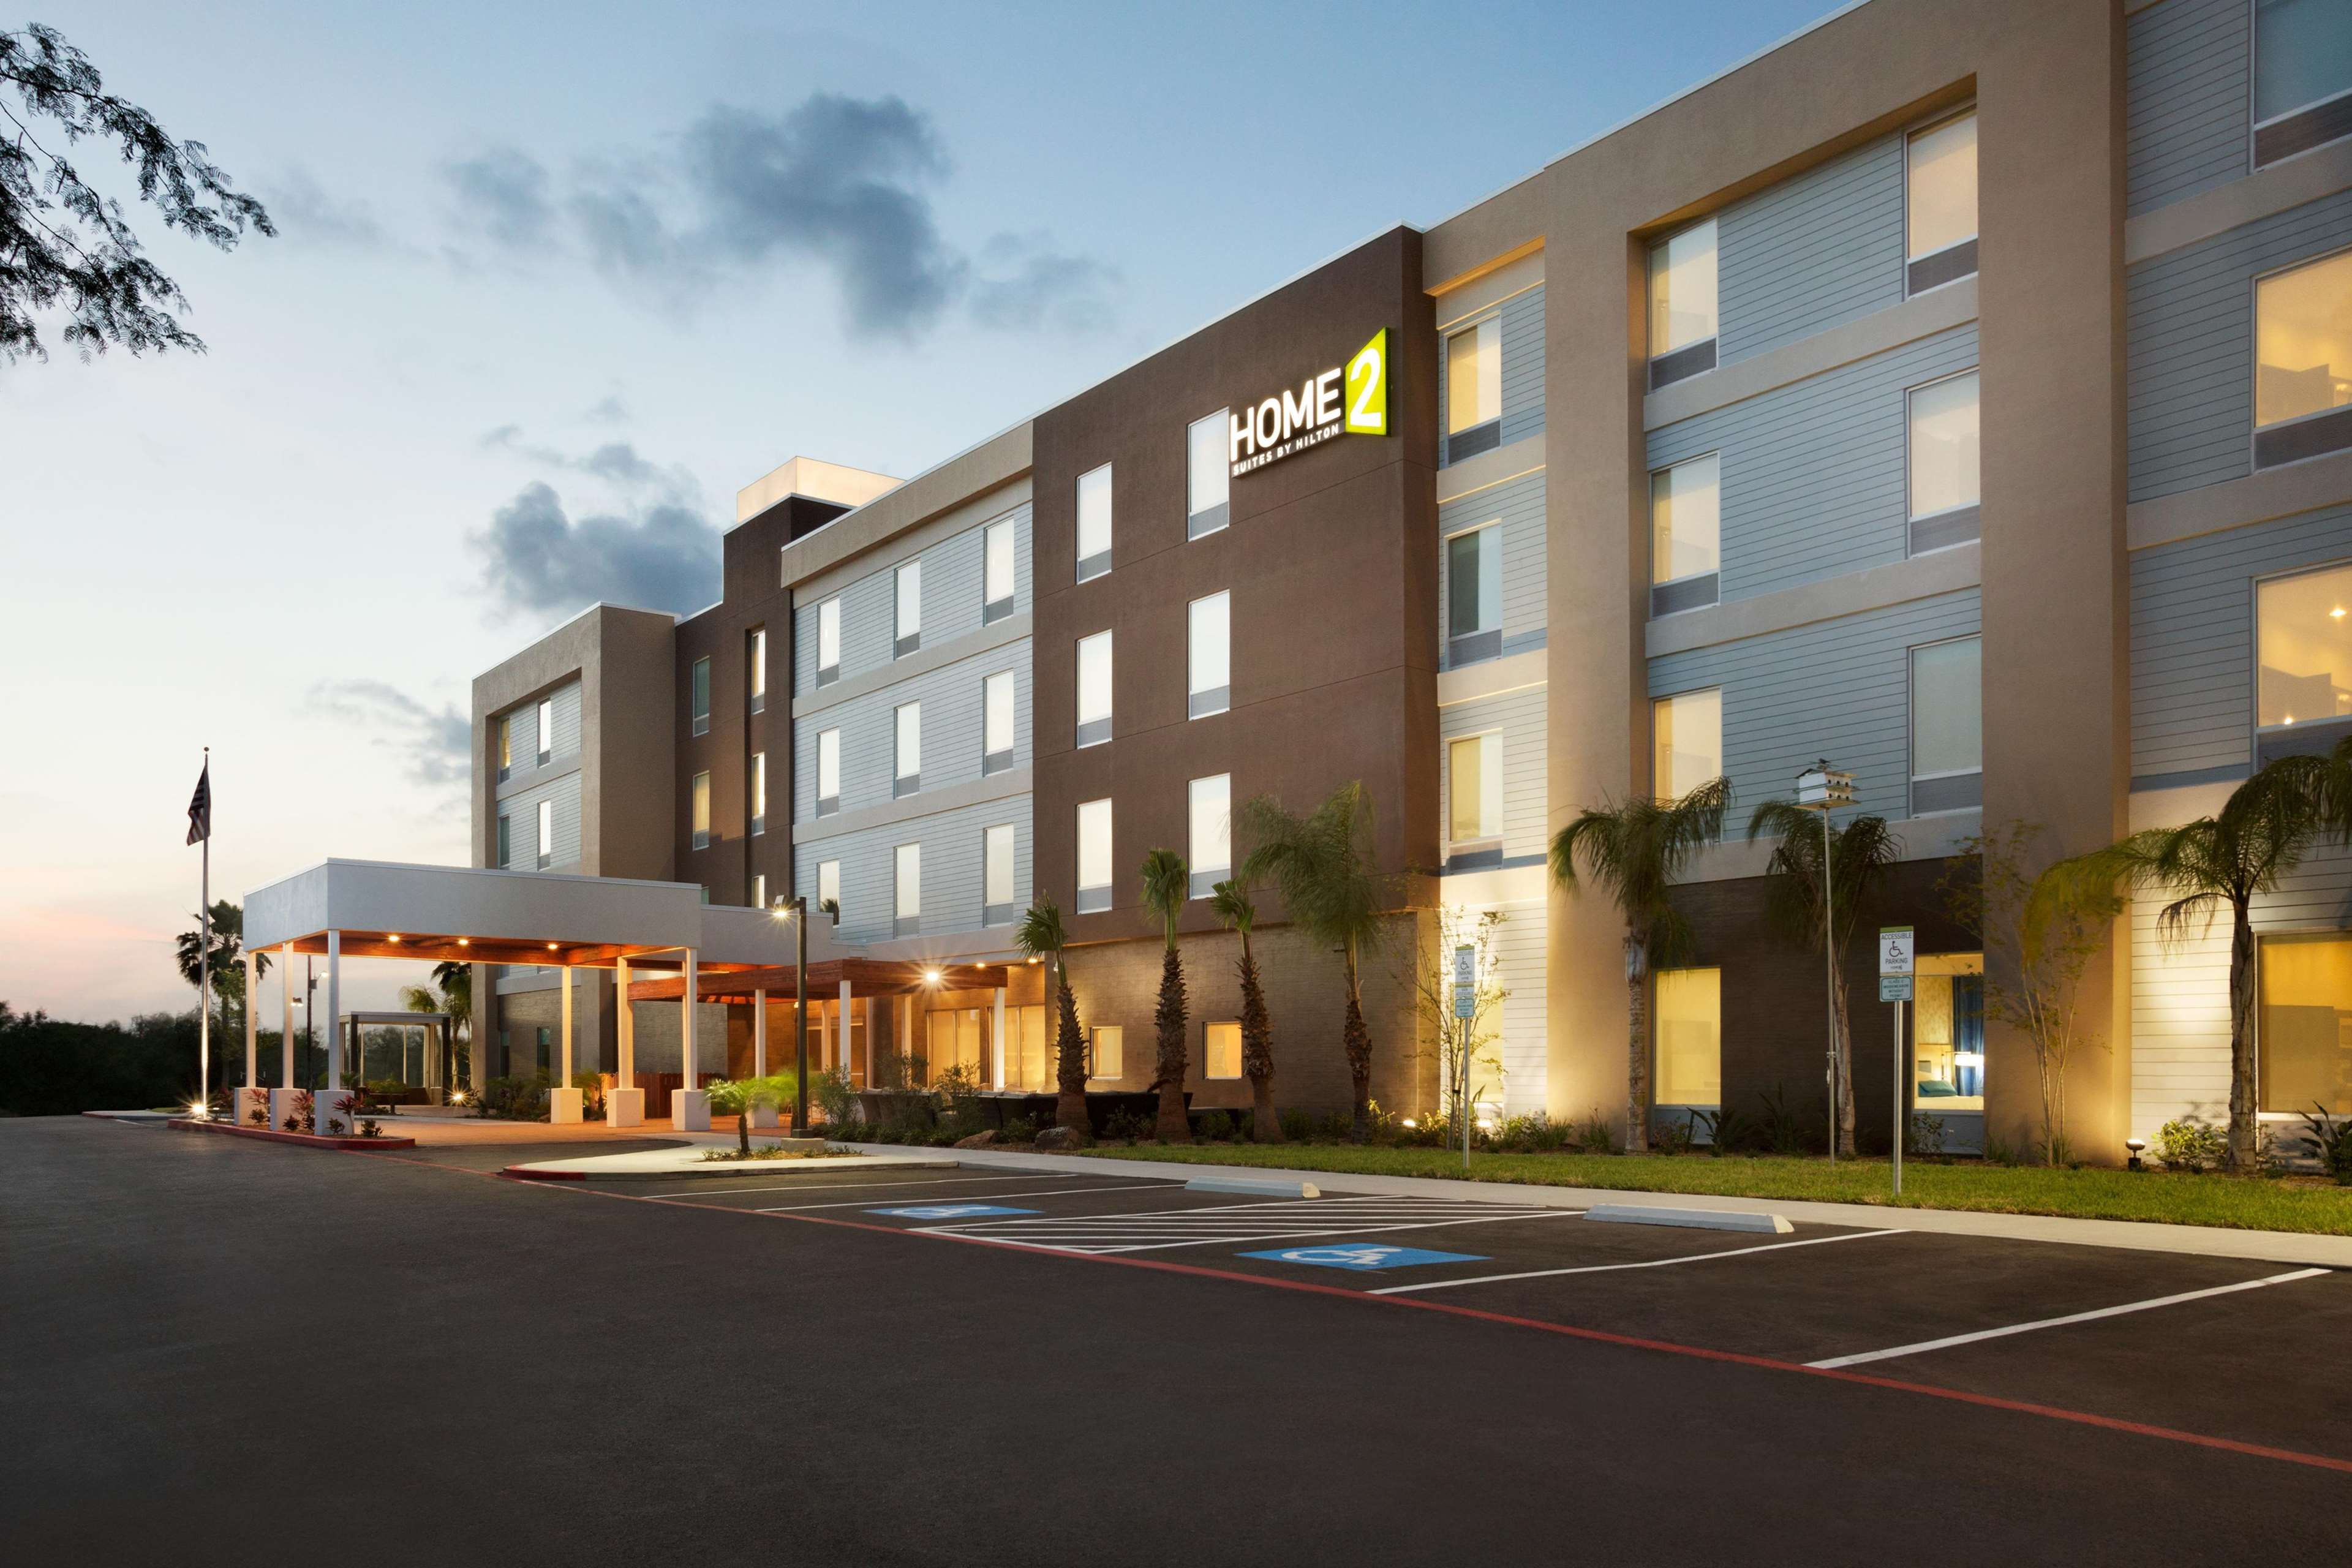 Extended Stay Hotel in TX McAllen 78501 Home2 Suites by Hilton McAllen 525 South Ware Road  (956)391-2964